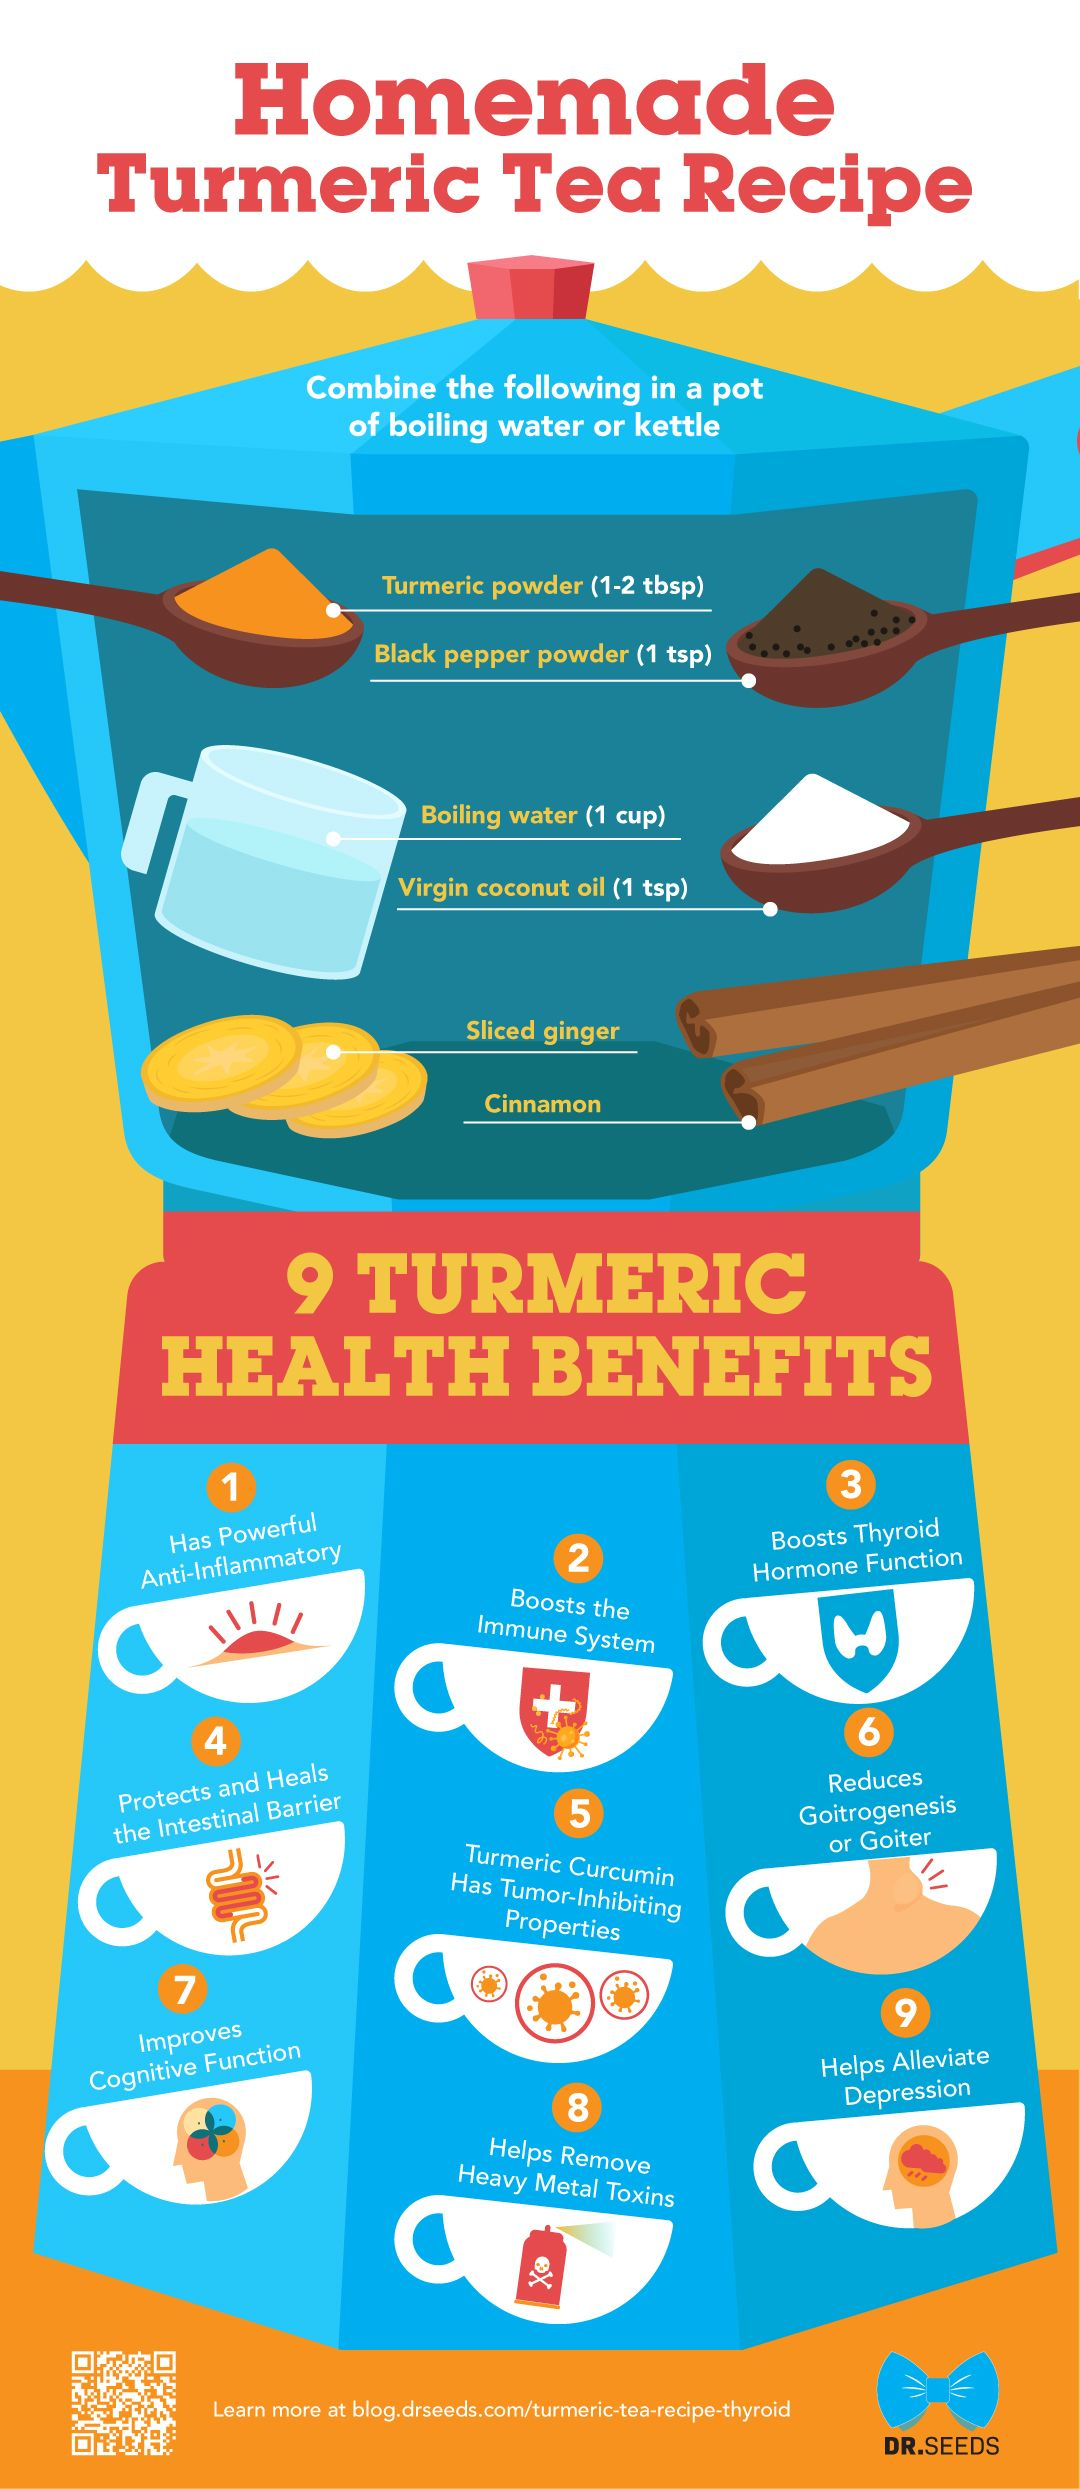 Golden Health in a Cup: How to Brew Homemade Turmeric Tea - Infographic